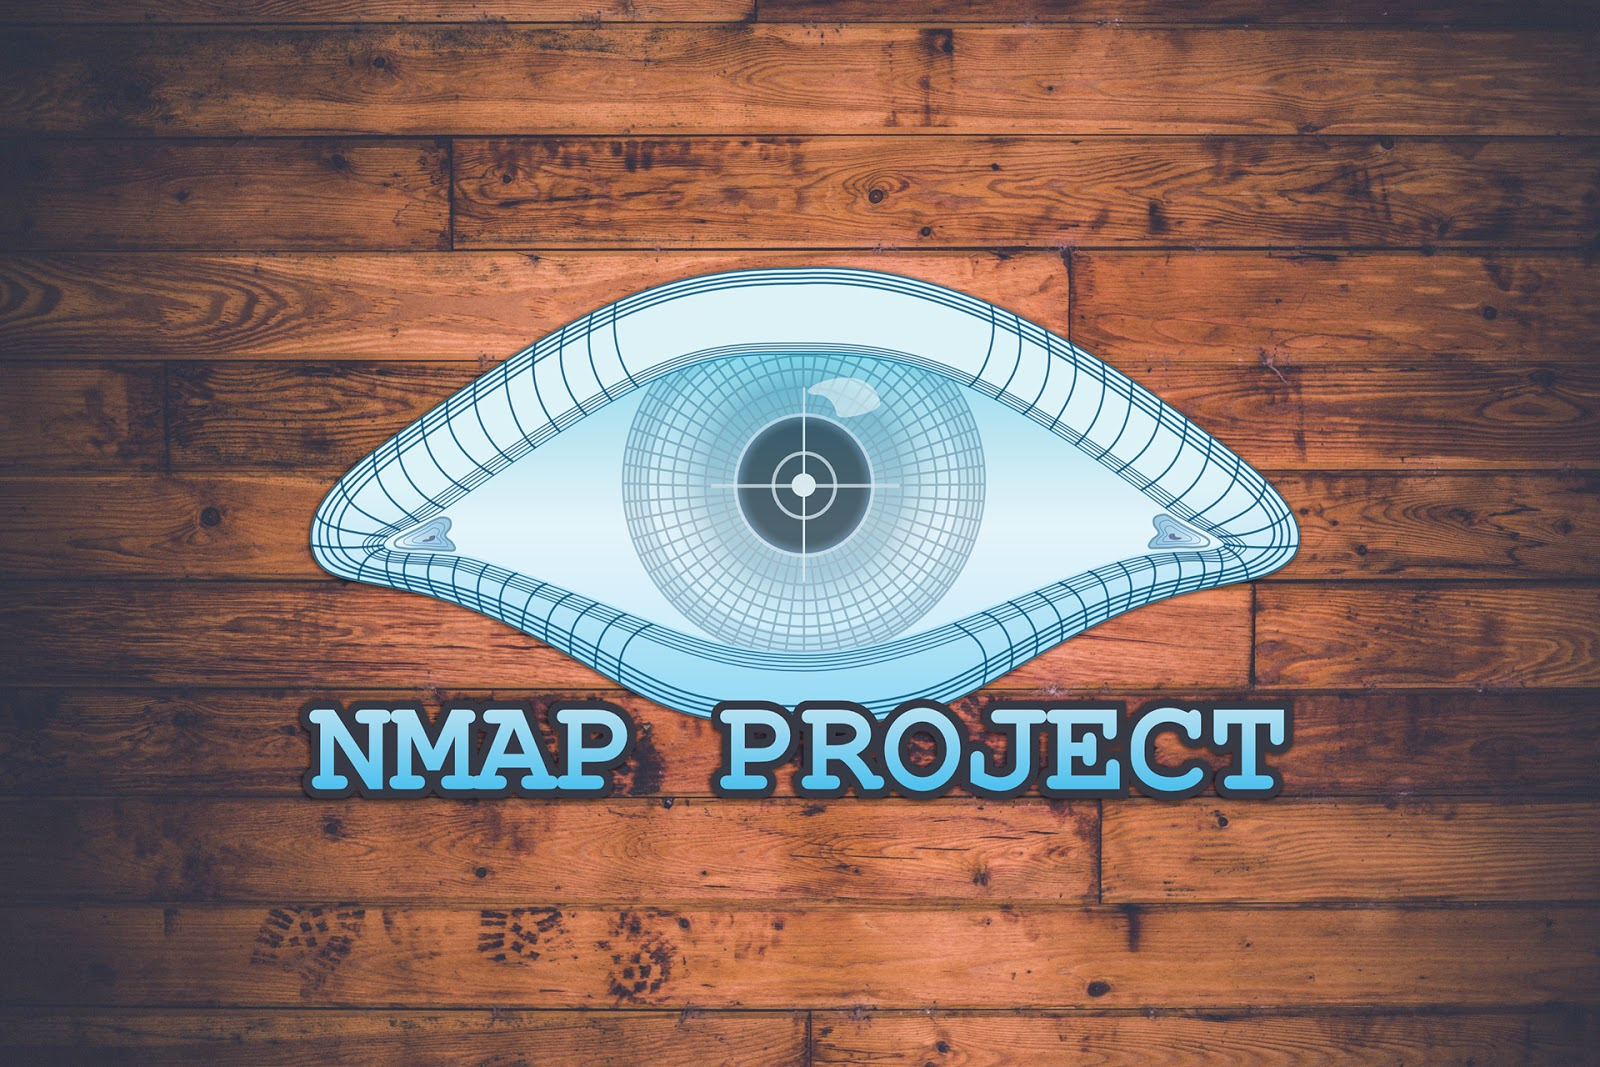 Nmap 7 40 Released, Install on Linux Ubuntu / Debian / Linux Mint